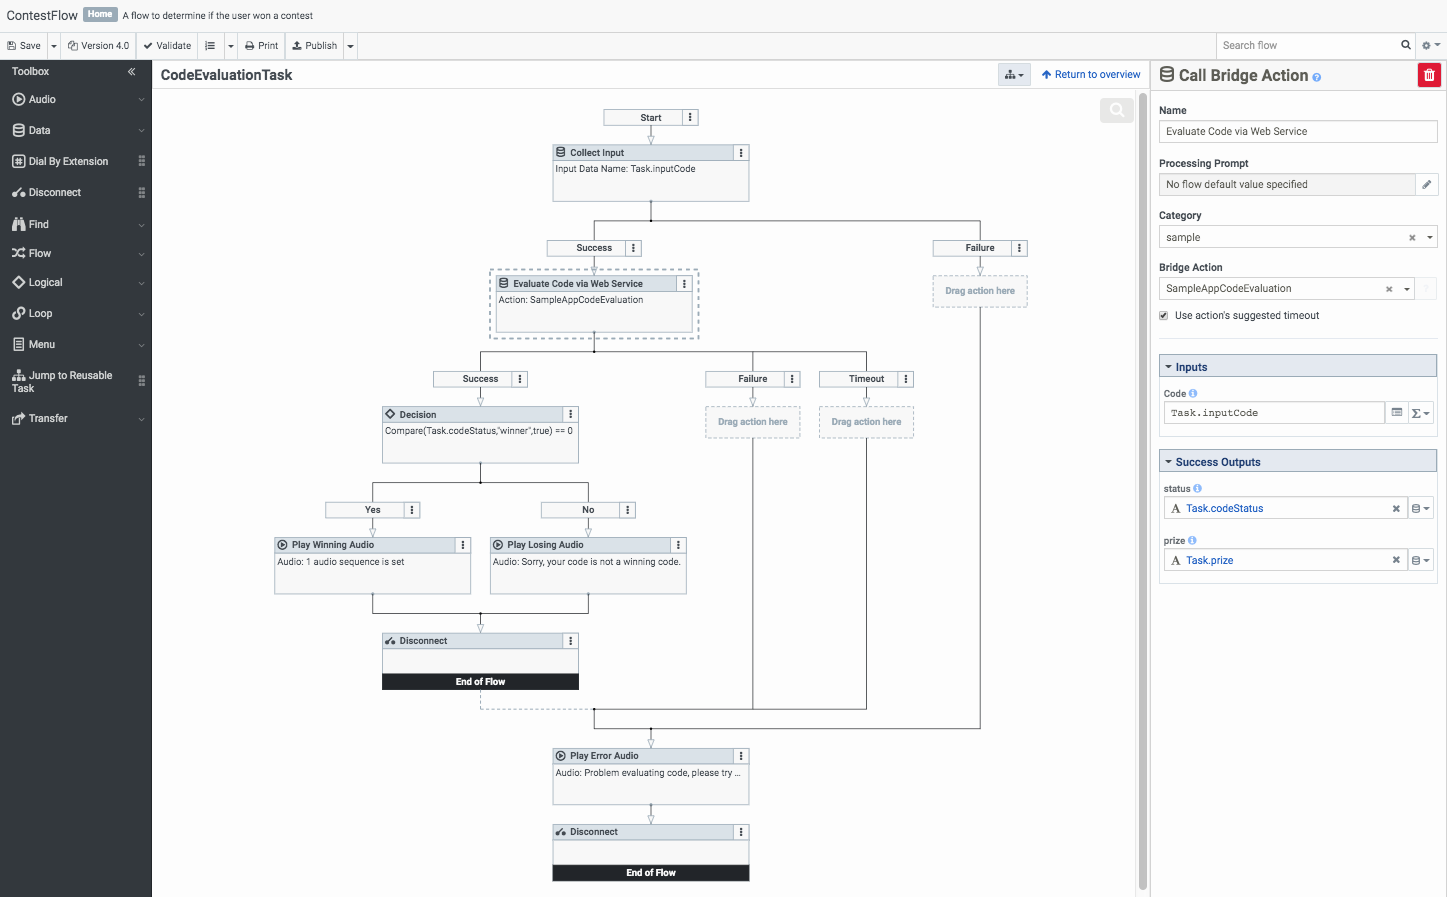 Example call flow for the web services data dip connector